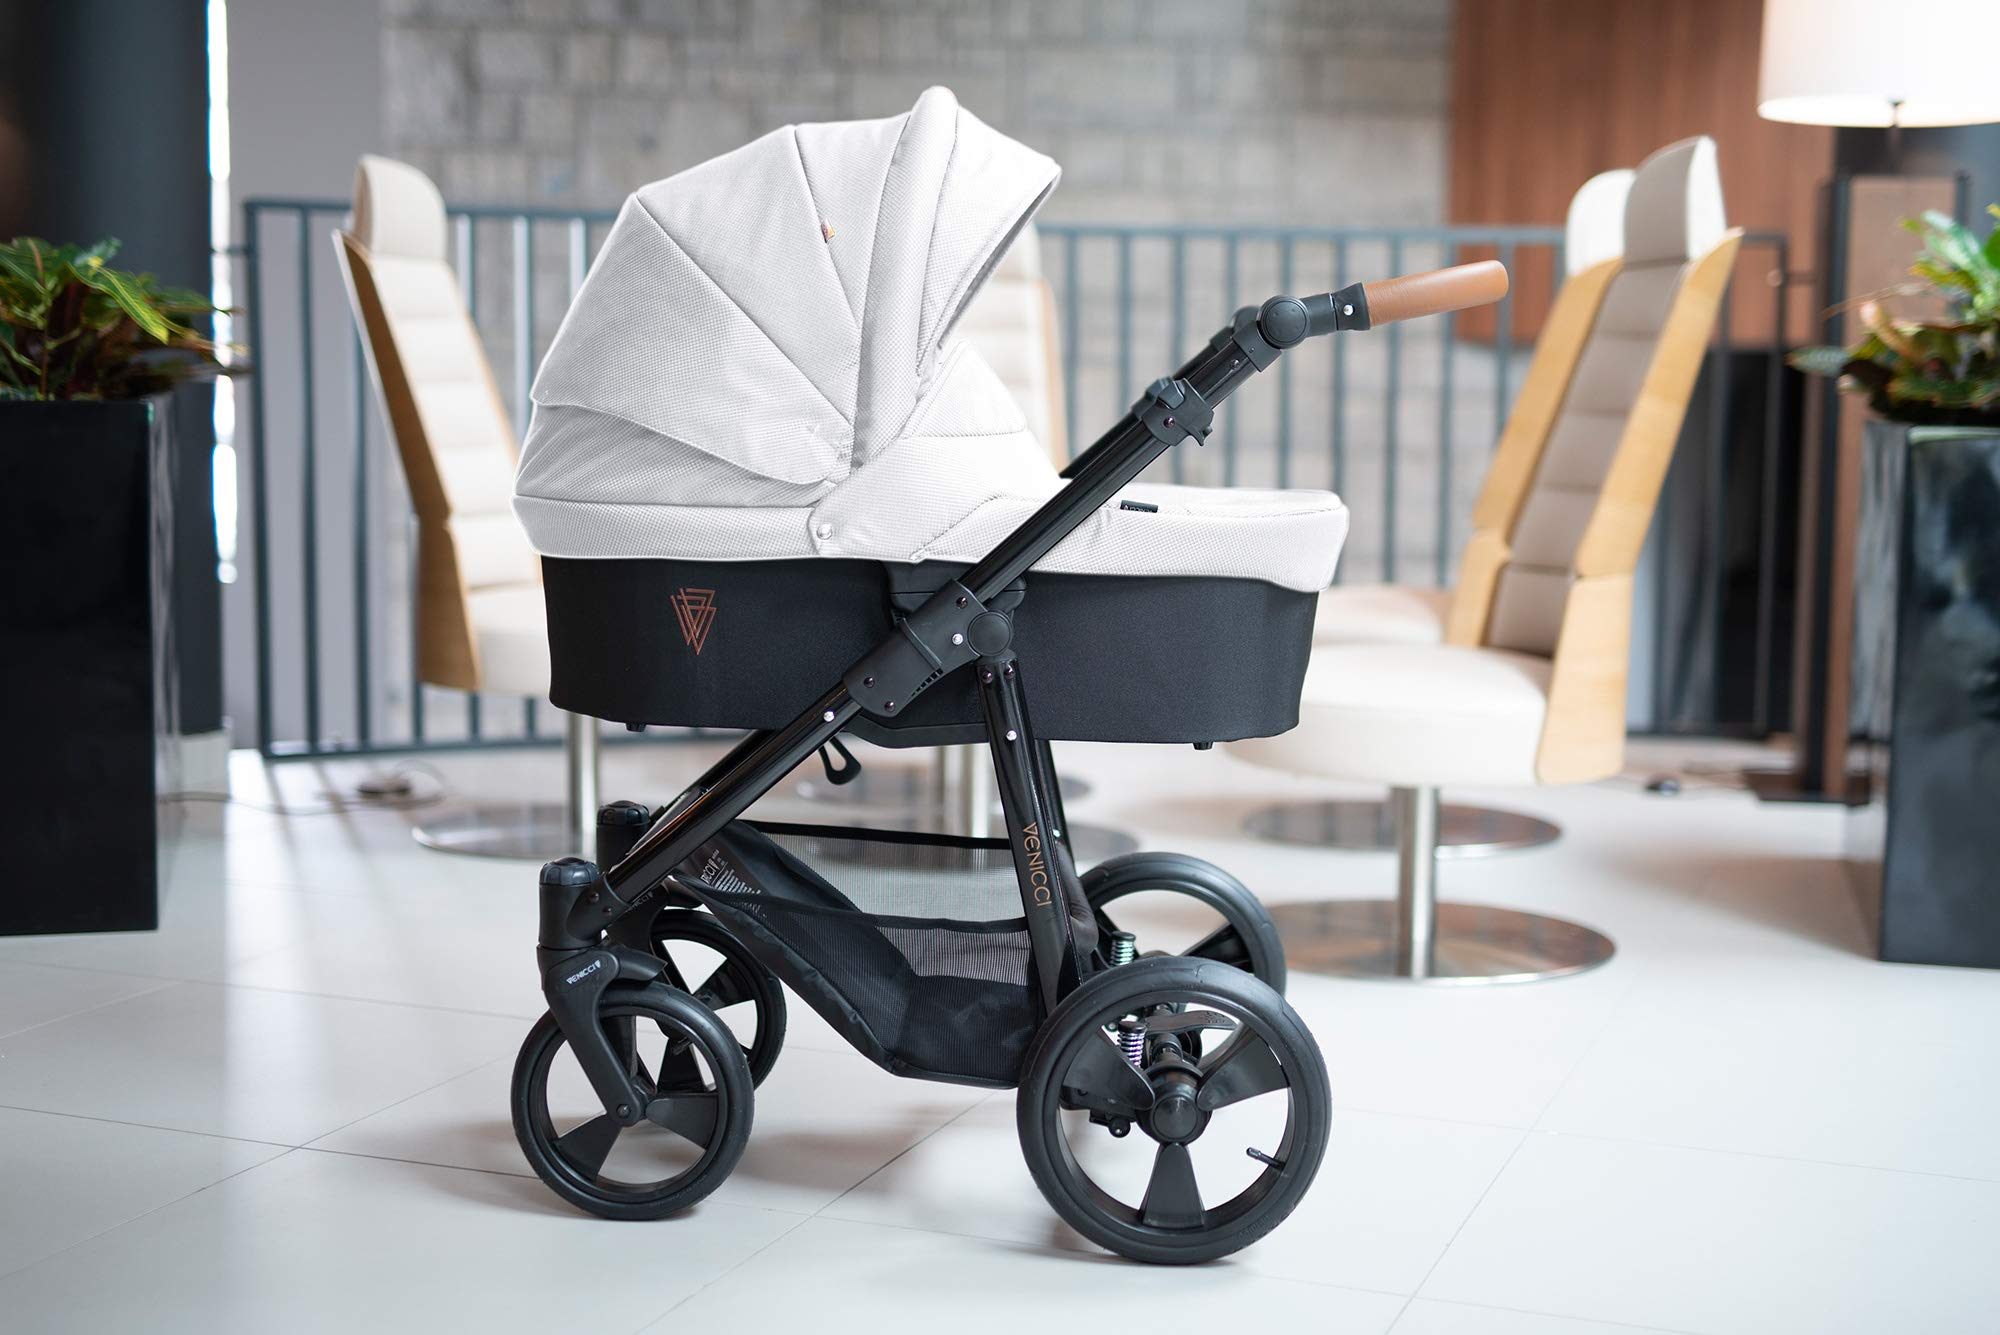 Venicci Gusto 2-in-1 - Ecru Travel System Venicci Also includes: Changing bag, Apron, Rain cover, Mosquito Net, Cup holder Carrycot: L 102cm W 61cm H 112 cm Age suitability: From birth to 6 months Seat unit: L 95cm W 61cm H 112cm Age suitability: From 7 to 36 months 2